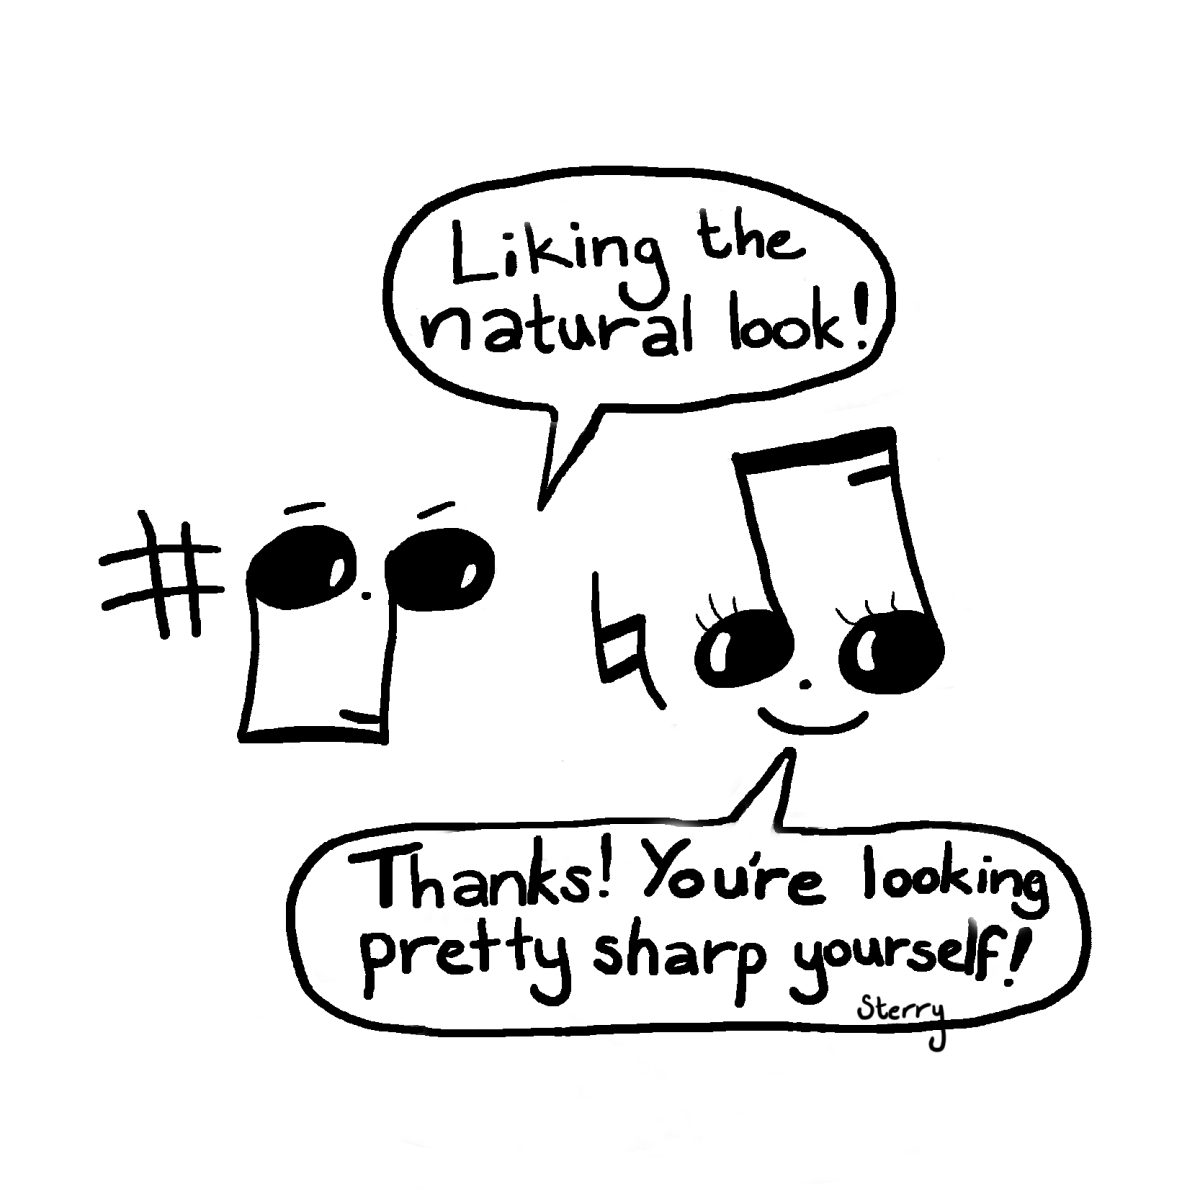 Musical Compliments Funny Music Cartoon By Hannah Sterry